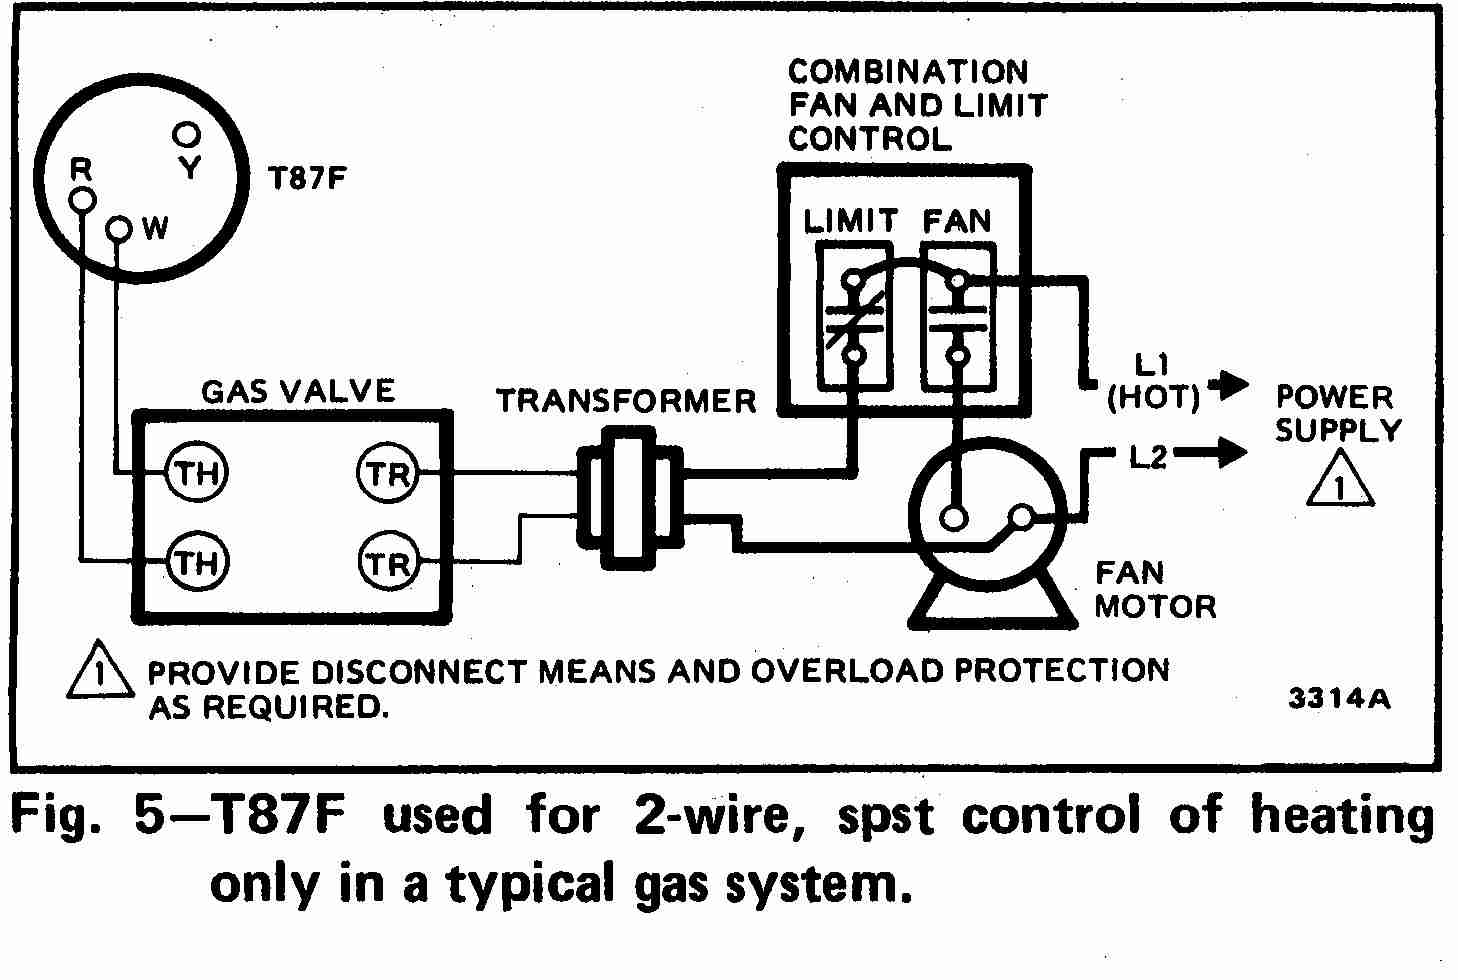 TT_T87F_0002_2Wg_DJF guide to wiring connections for room thermostats 2 wire thermostat wiring diagram heat only at soozxer.org